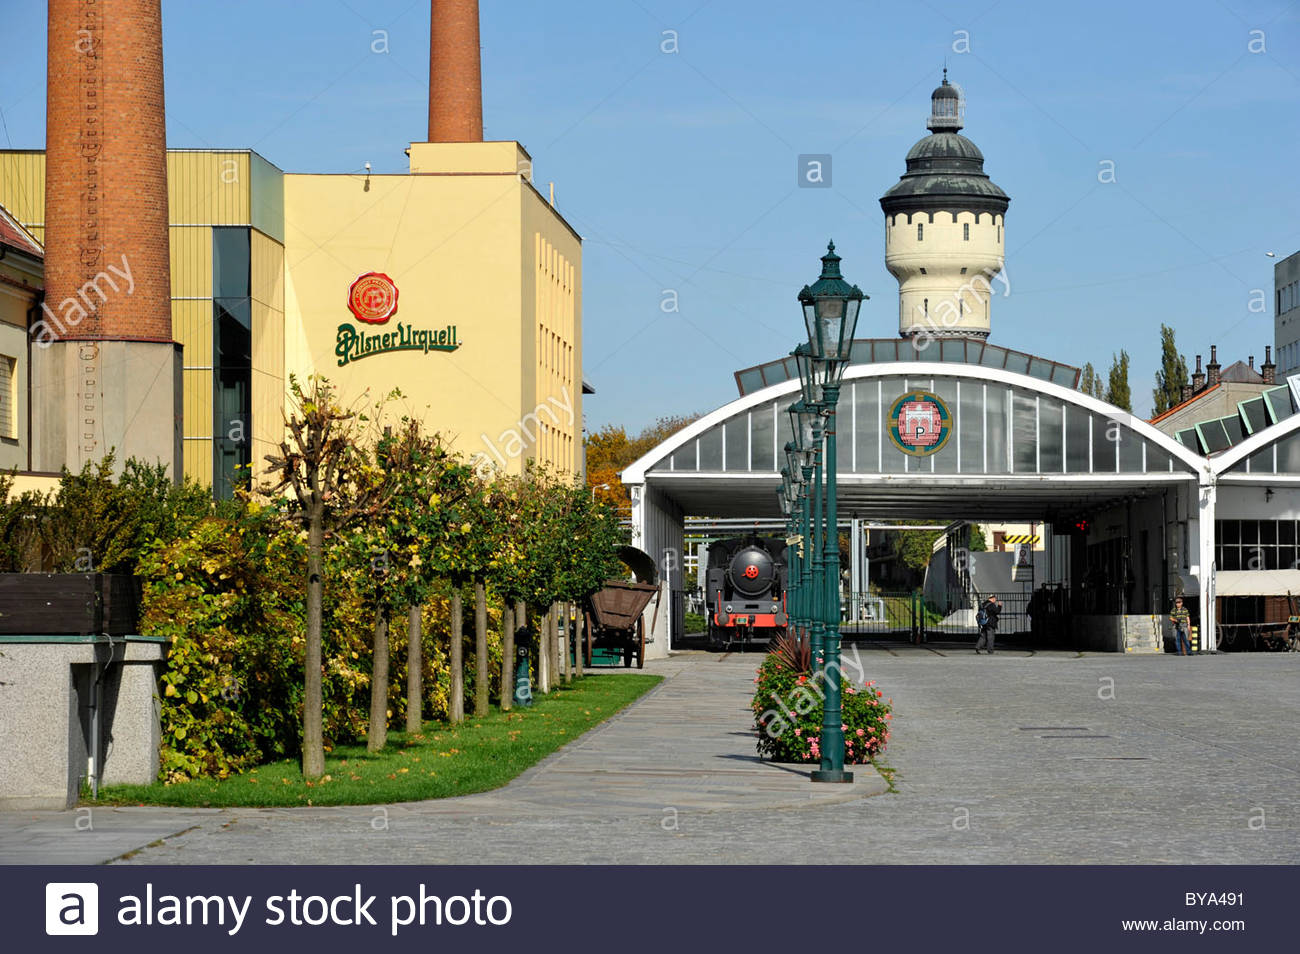 Techmania Science Centre Plzeň, Brewhouses, beer transport, water tower, Pilsner Urquell brewery ...